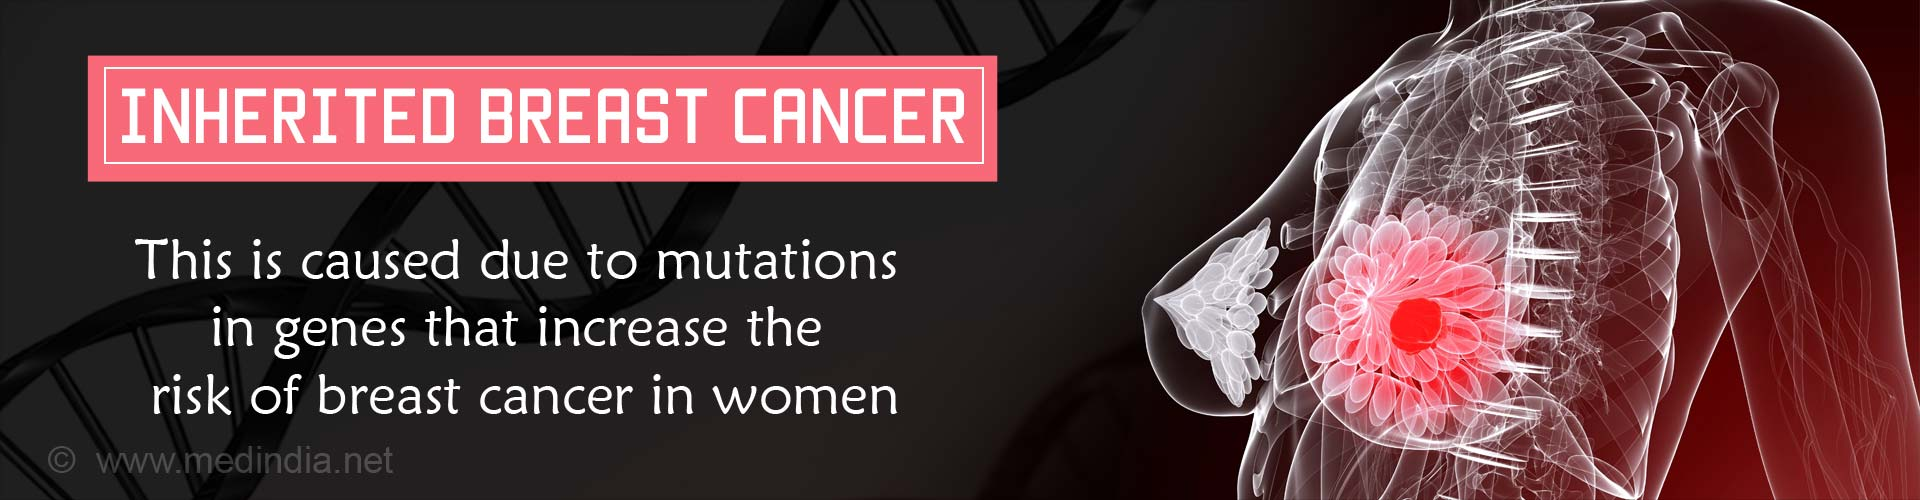 Inherited Breast Cancer - This is caused due to mutations in genes that increase the risk of breast cancer in women